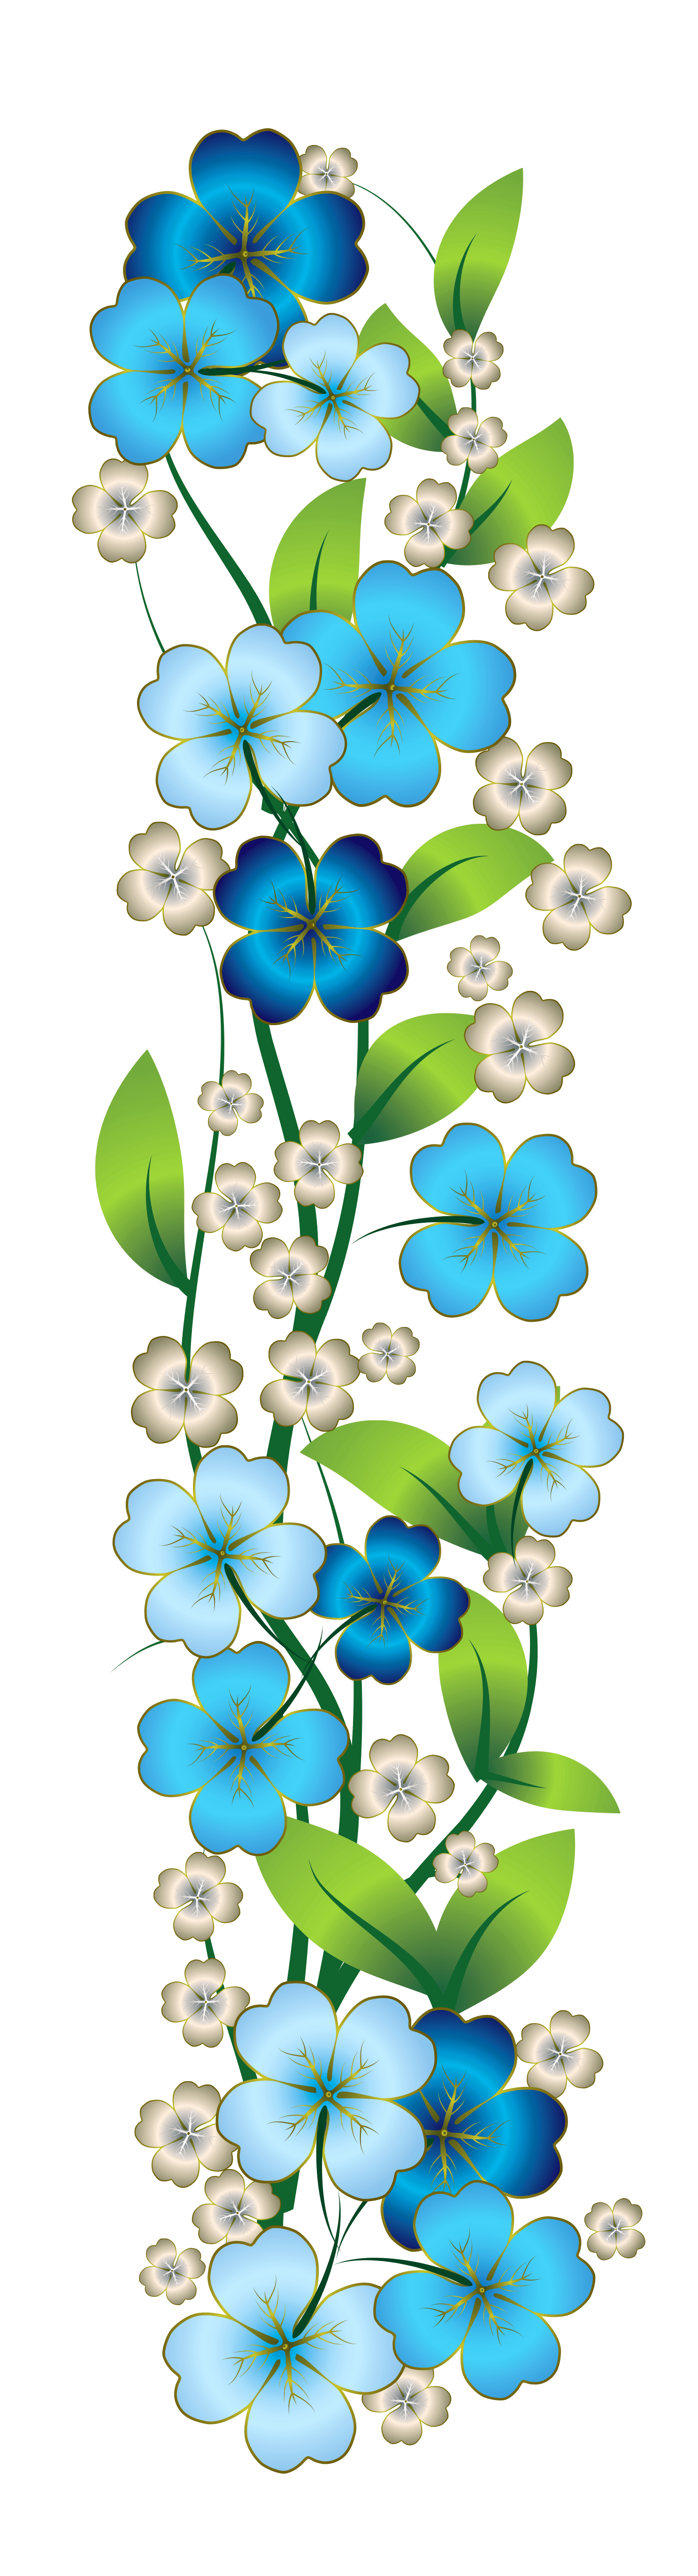 blue flower decor clipart